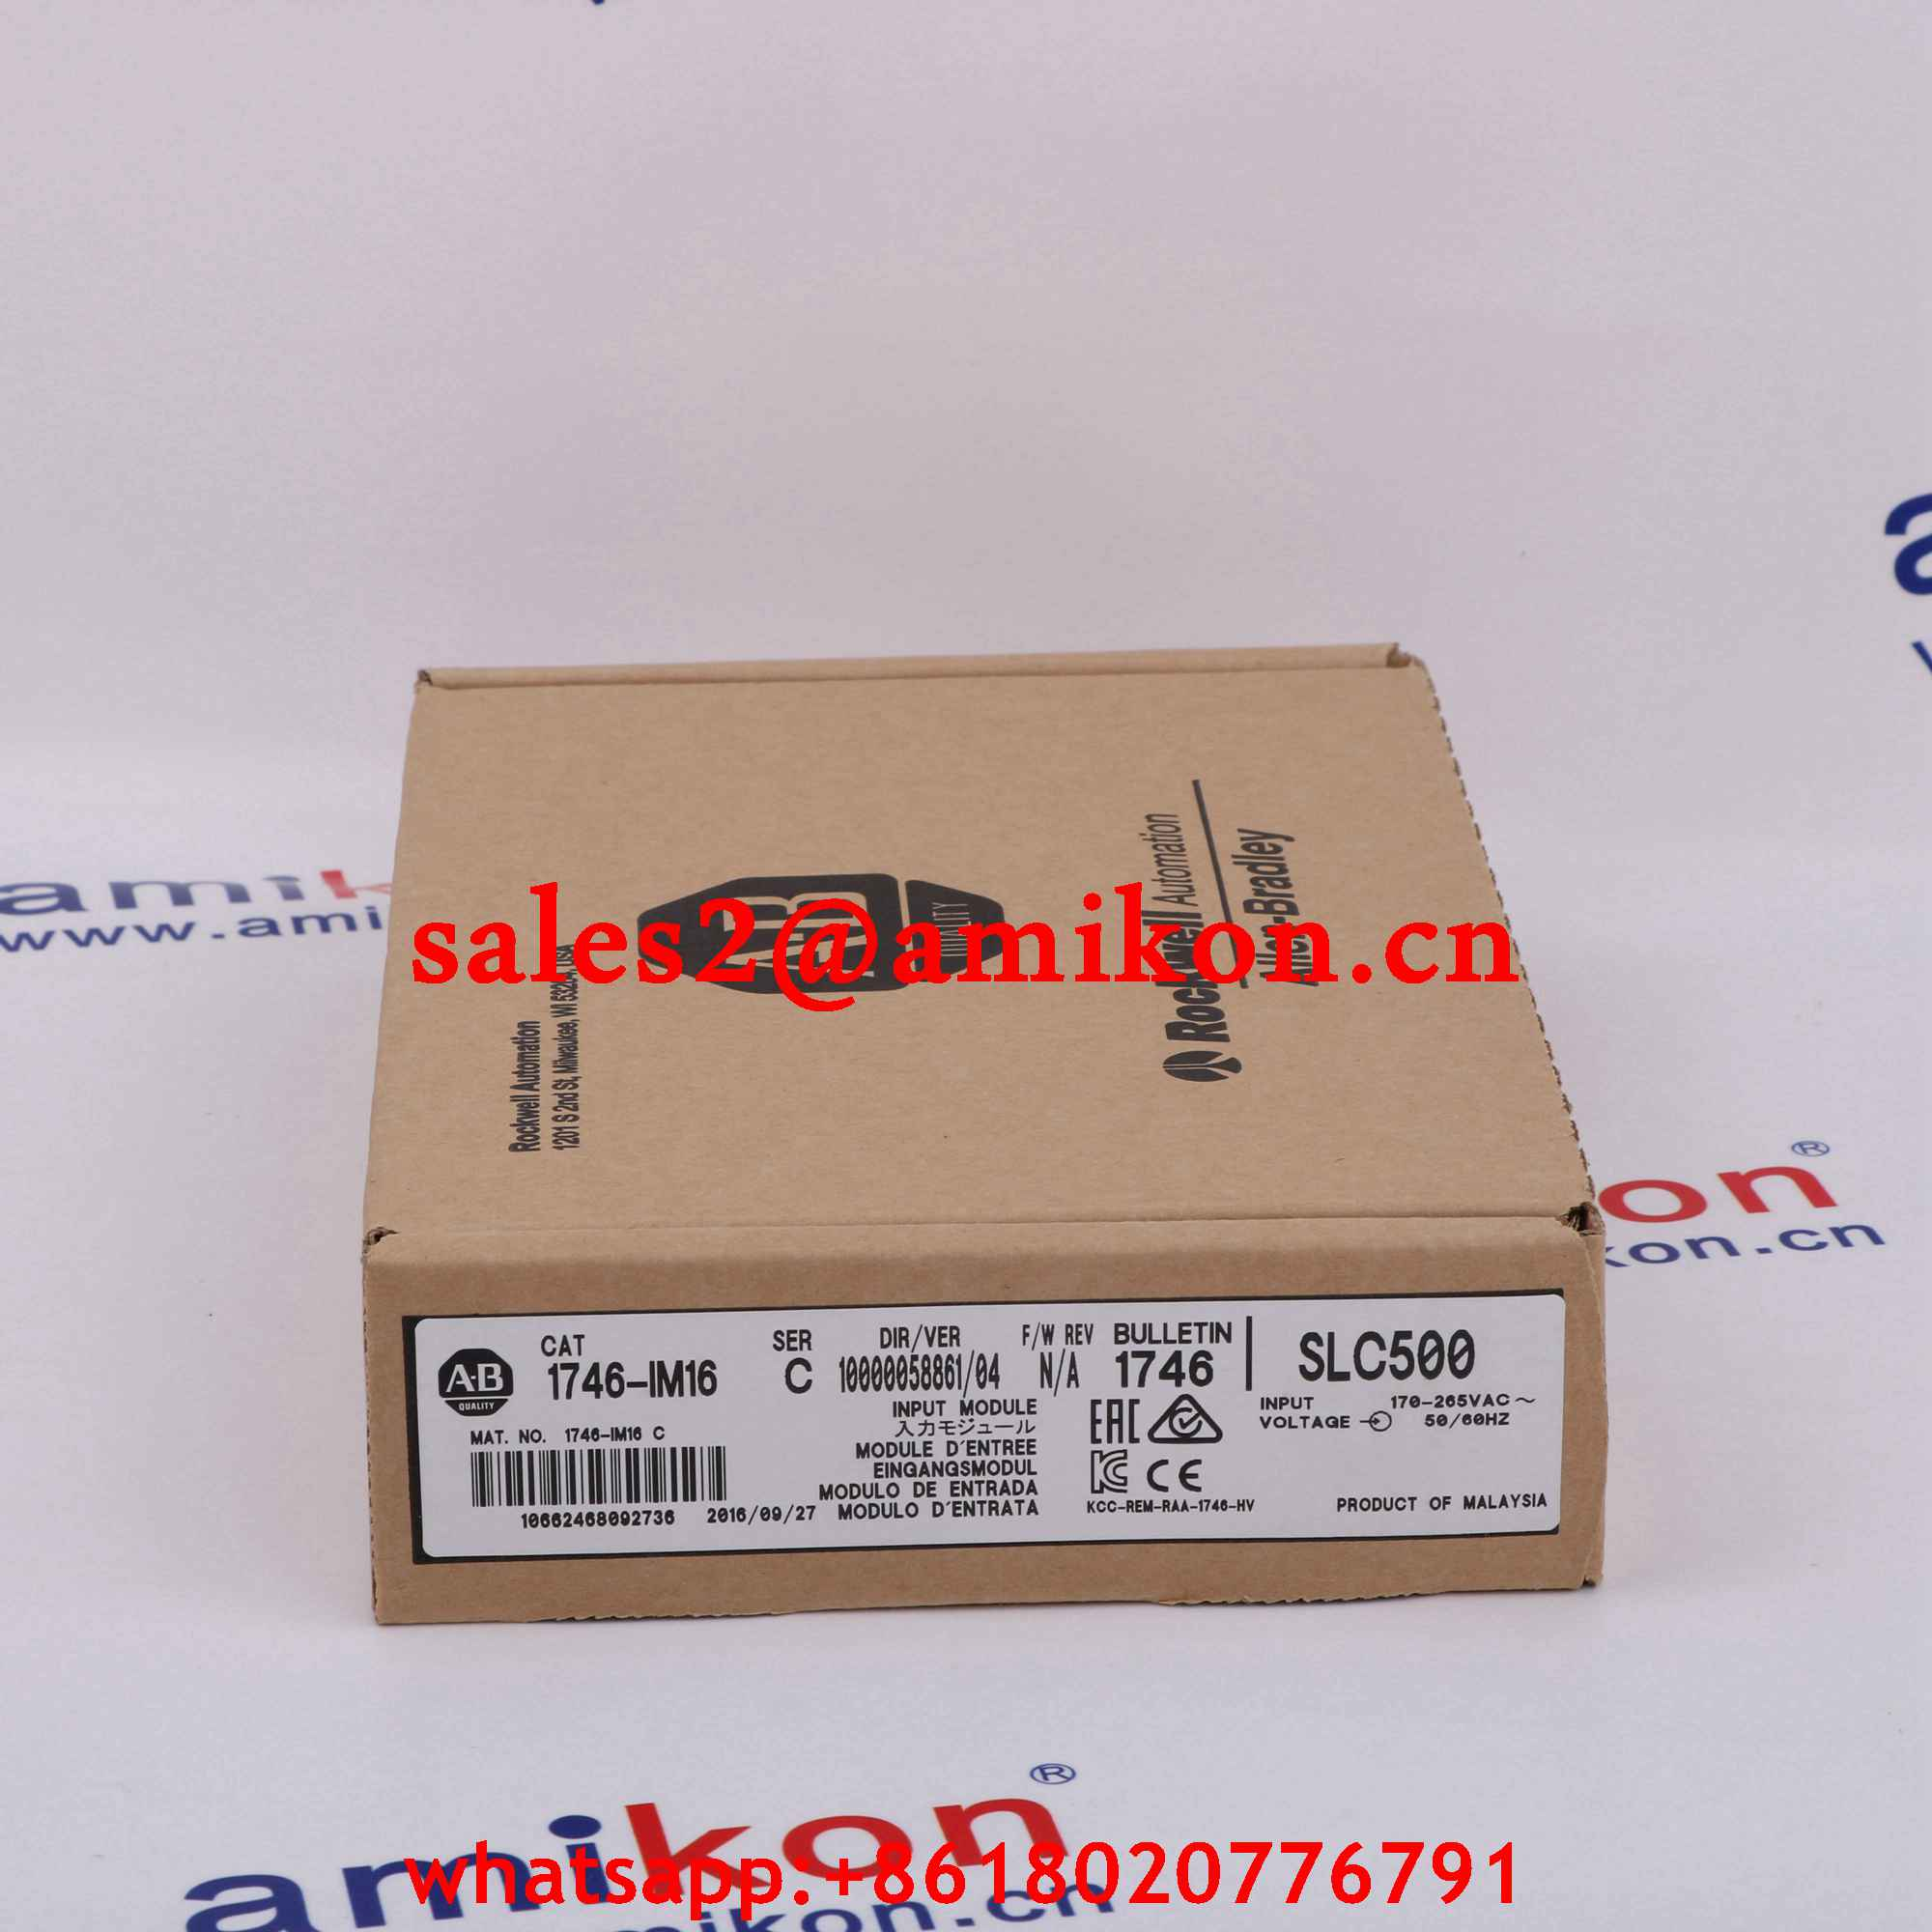 SIEMENS 6FC5357-0BB25-0AB0 NEW IN STOCK DISOUNT SALE